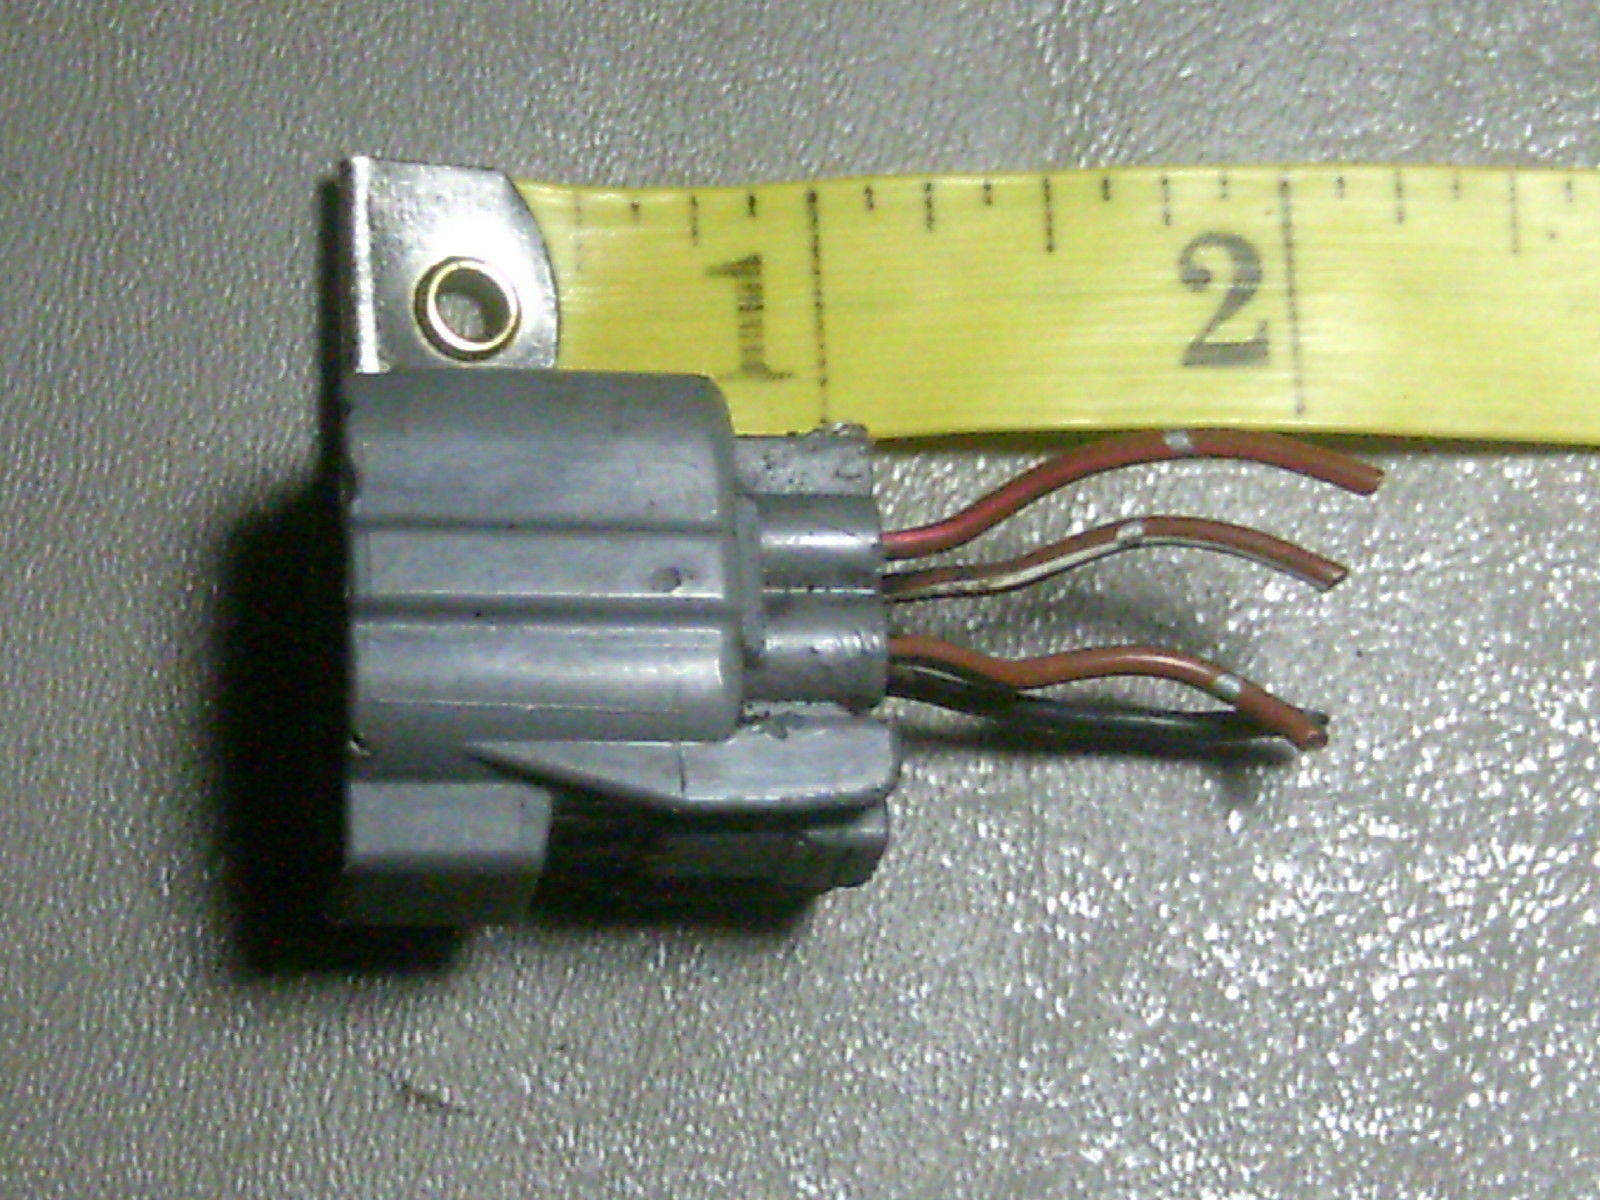 Primary image for 95 Acura Integra GSR GS-R Cruise Control Servo Unit Actuator Pigtail Wires